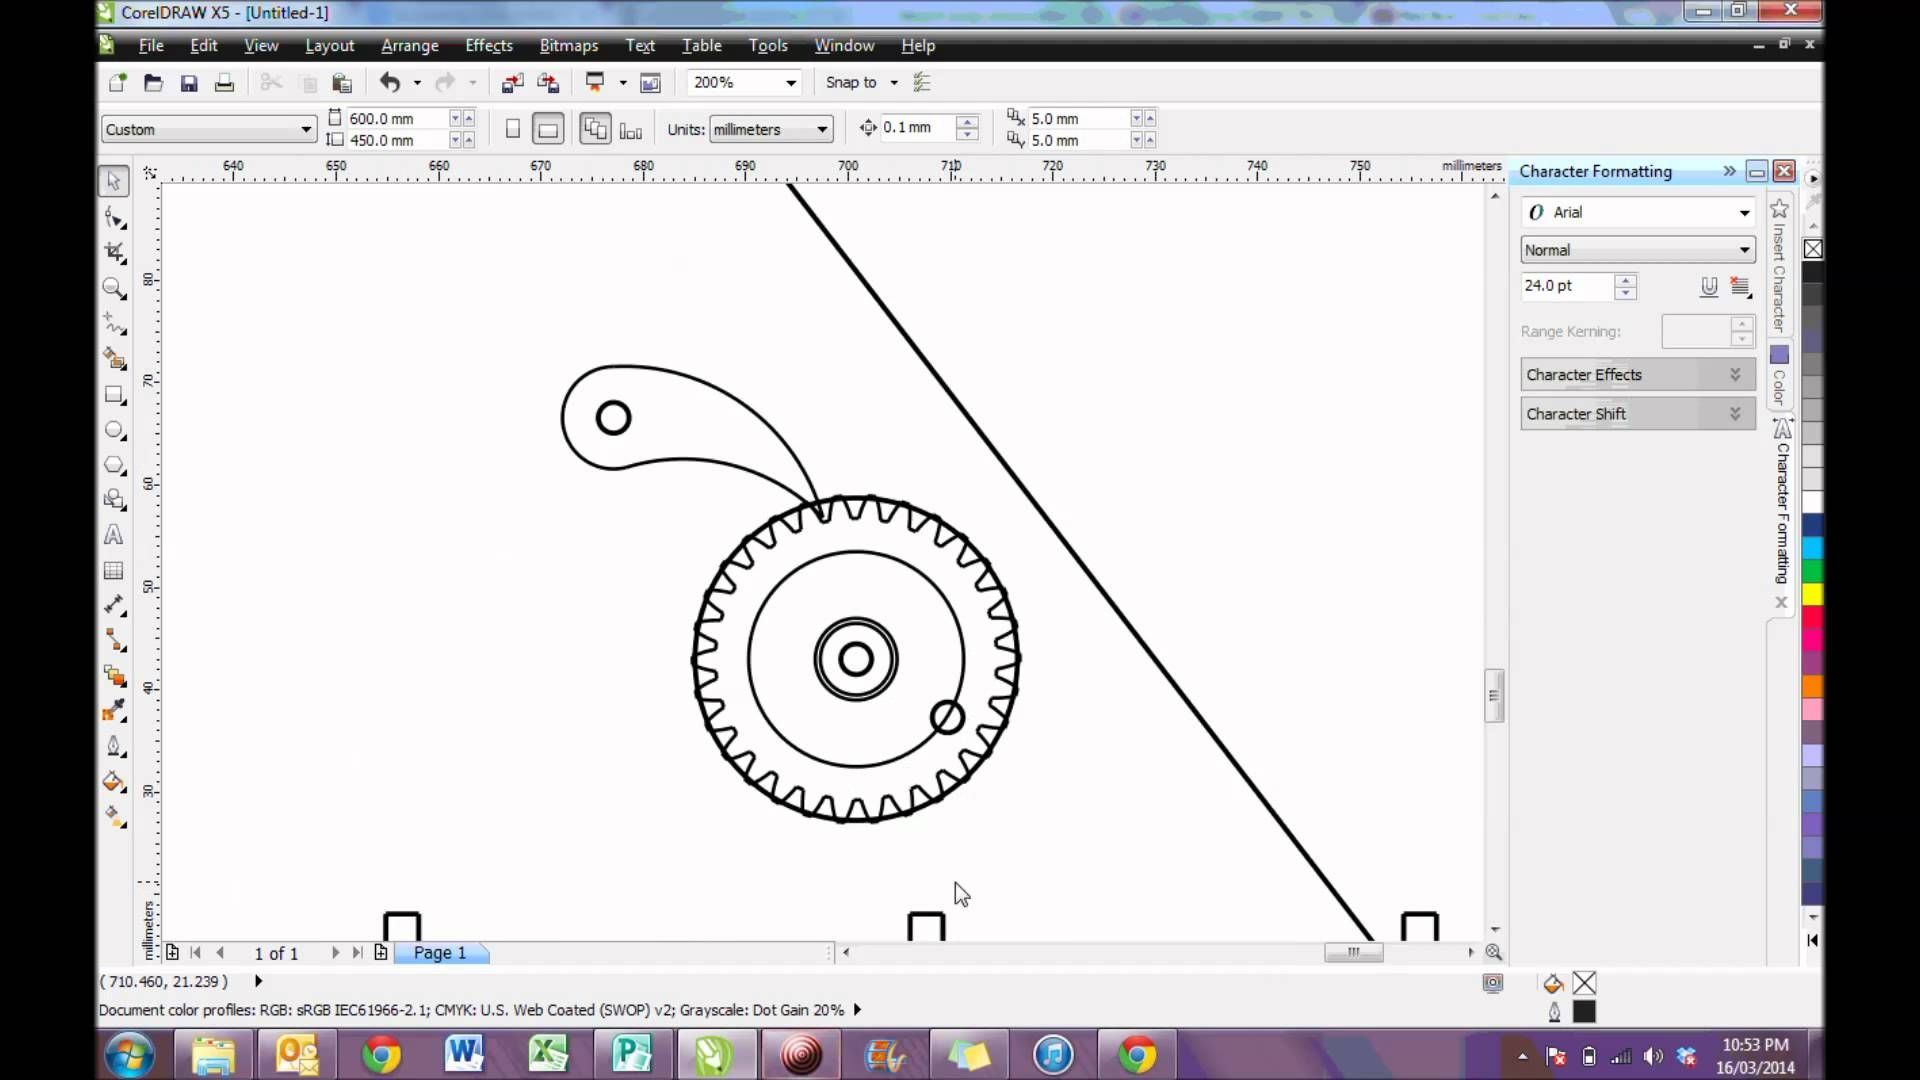 A short demonstration on how to use the DXF file you